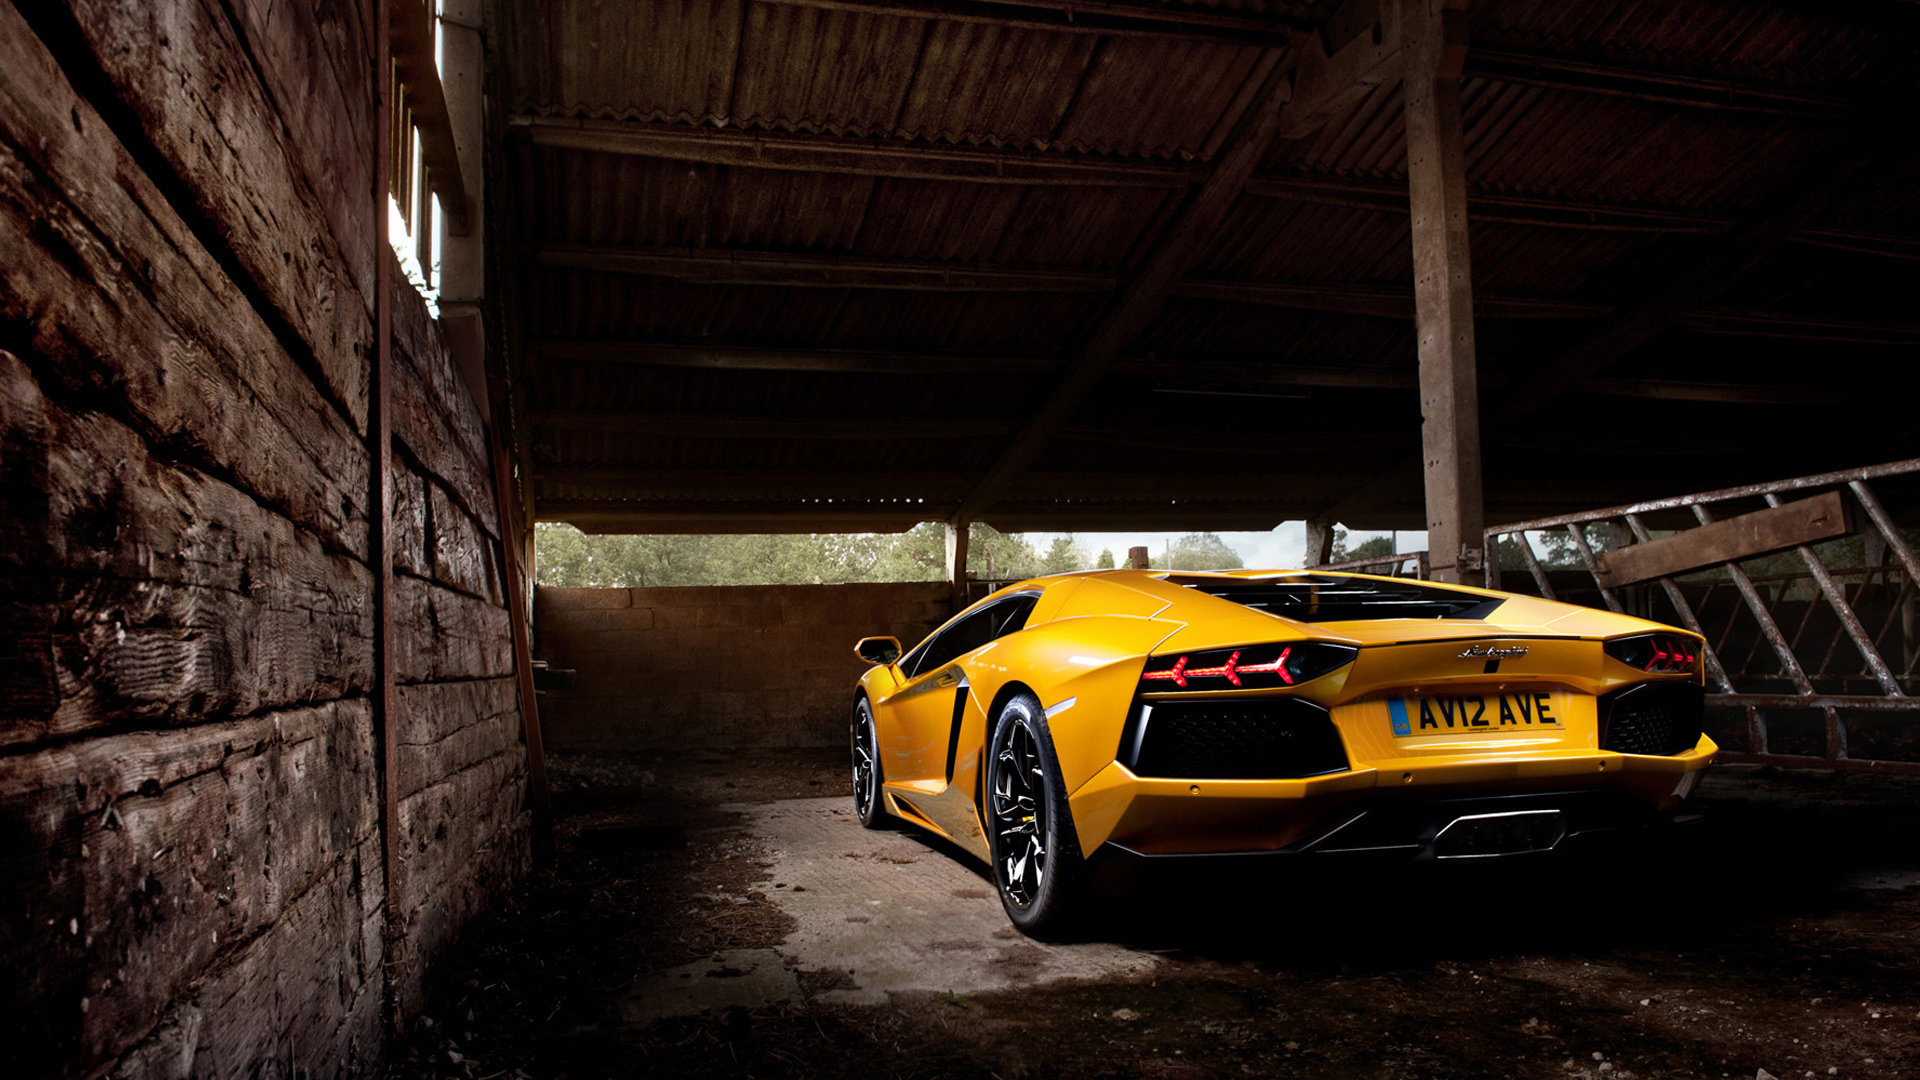 Hd wallpaper lamborghini - Yellow Lamborghini Aventador 2